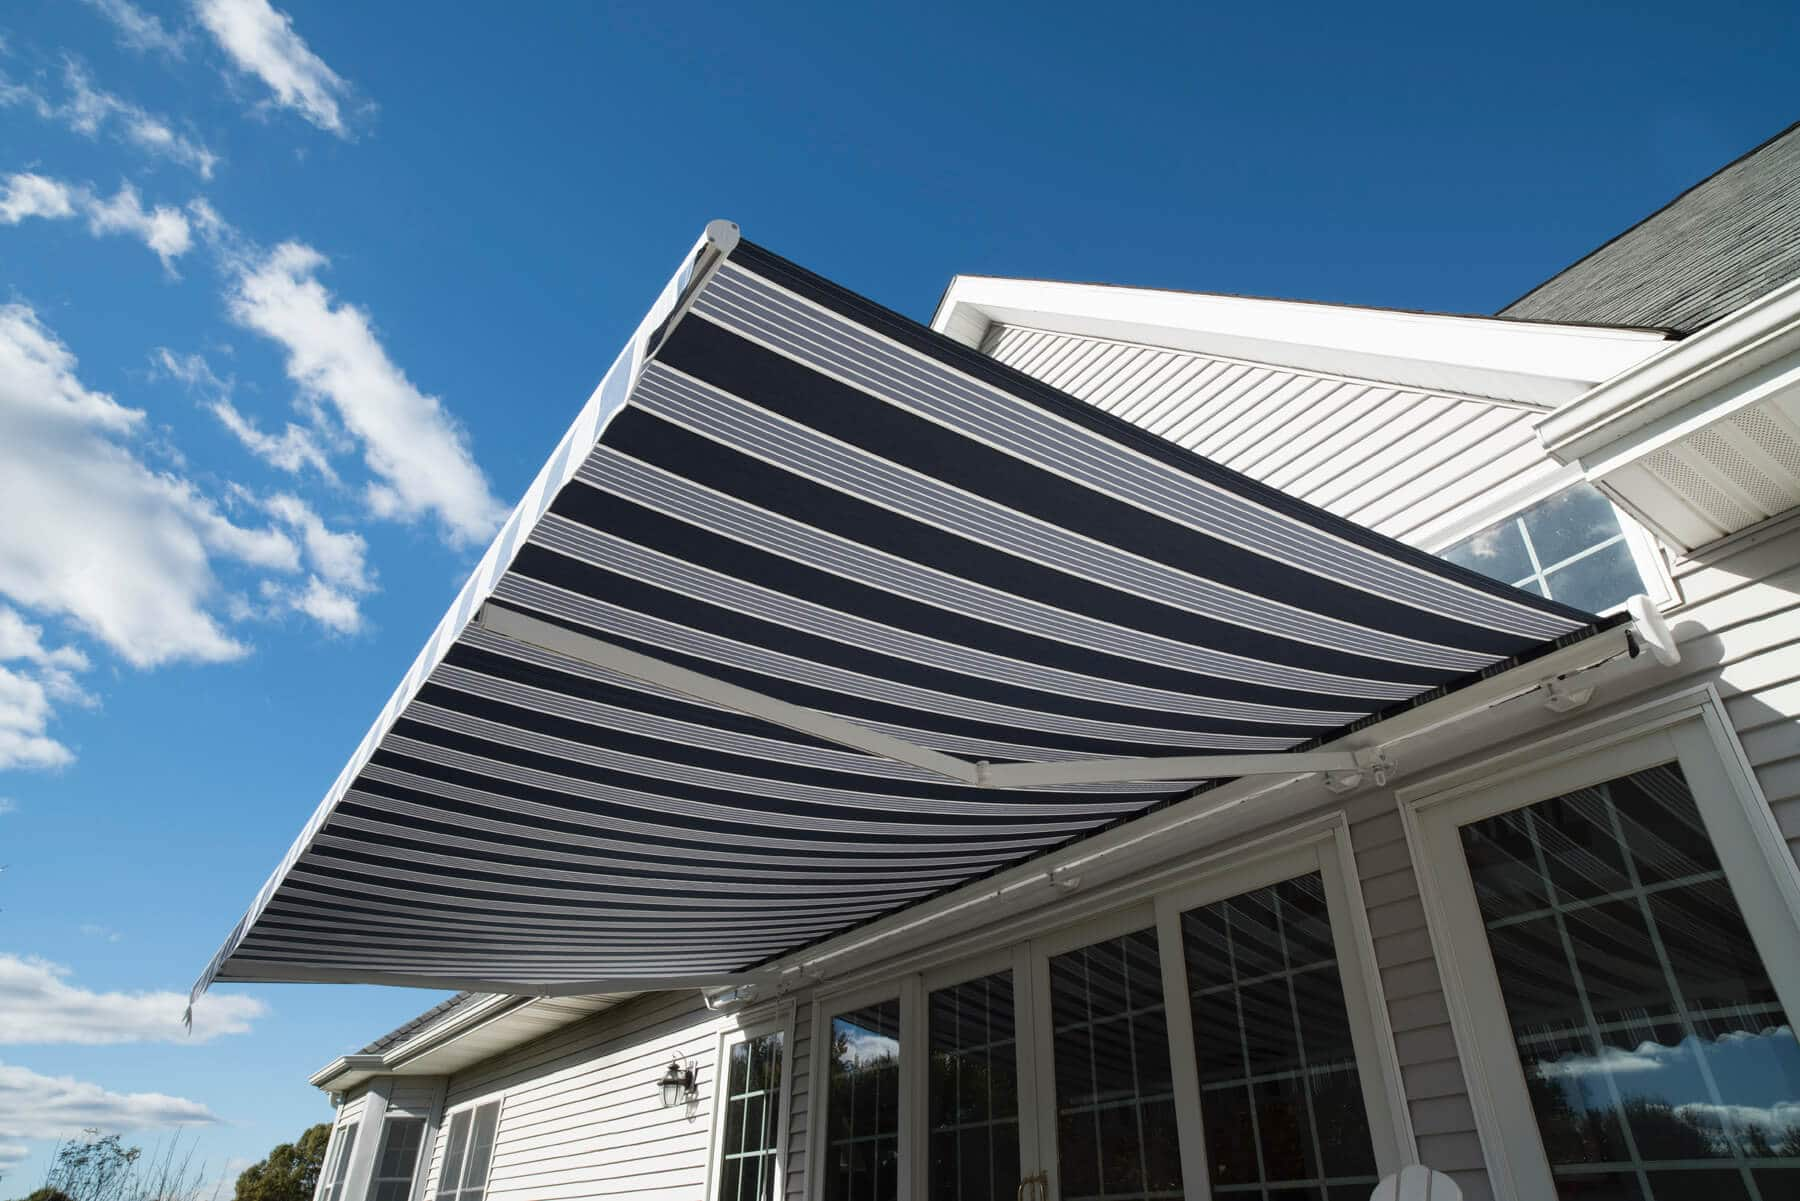 retractable awning on home - Marygrove Awnings